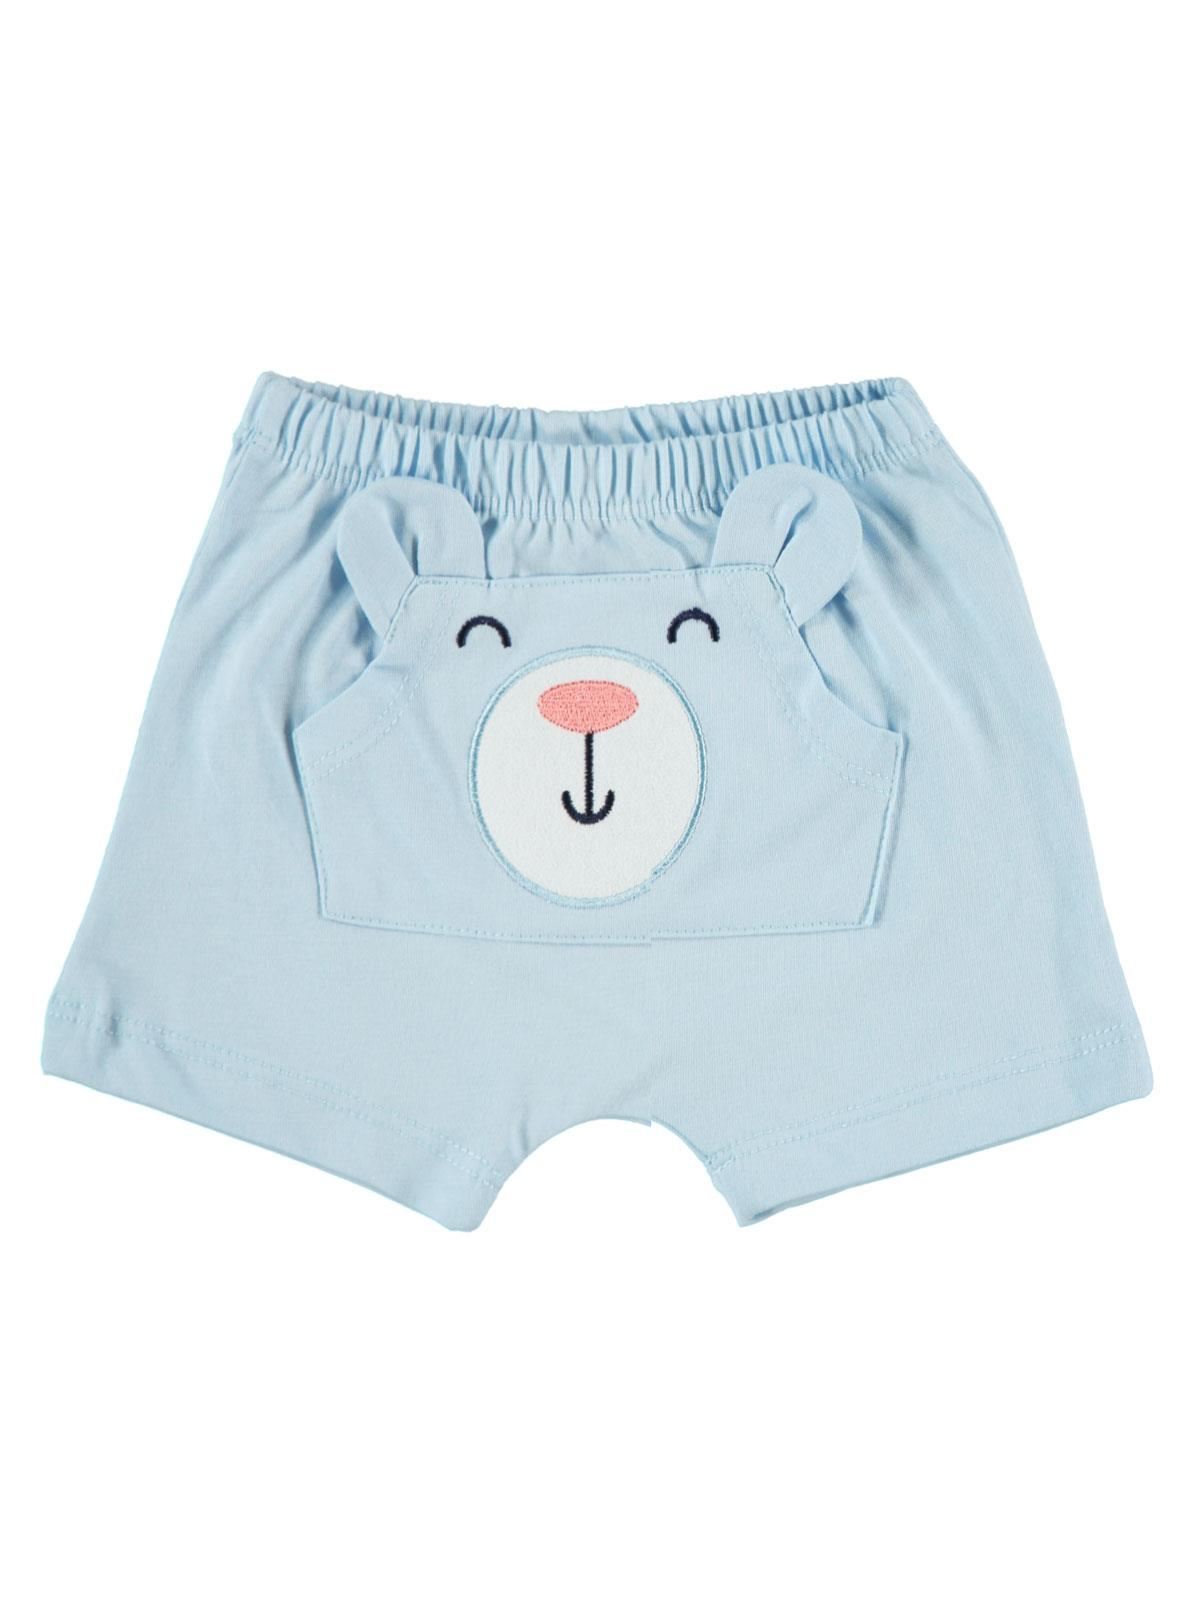 Summer Clothes Product Fashion Colorful Comfortable Stylish Civil Baby Boy Shorts 6-18 Months 385878963 Y91